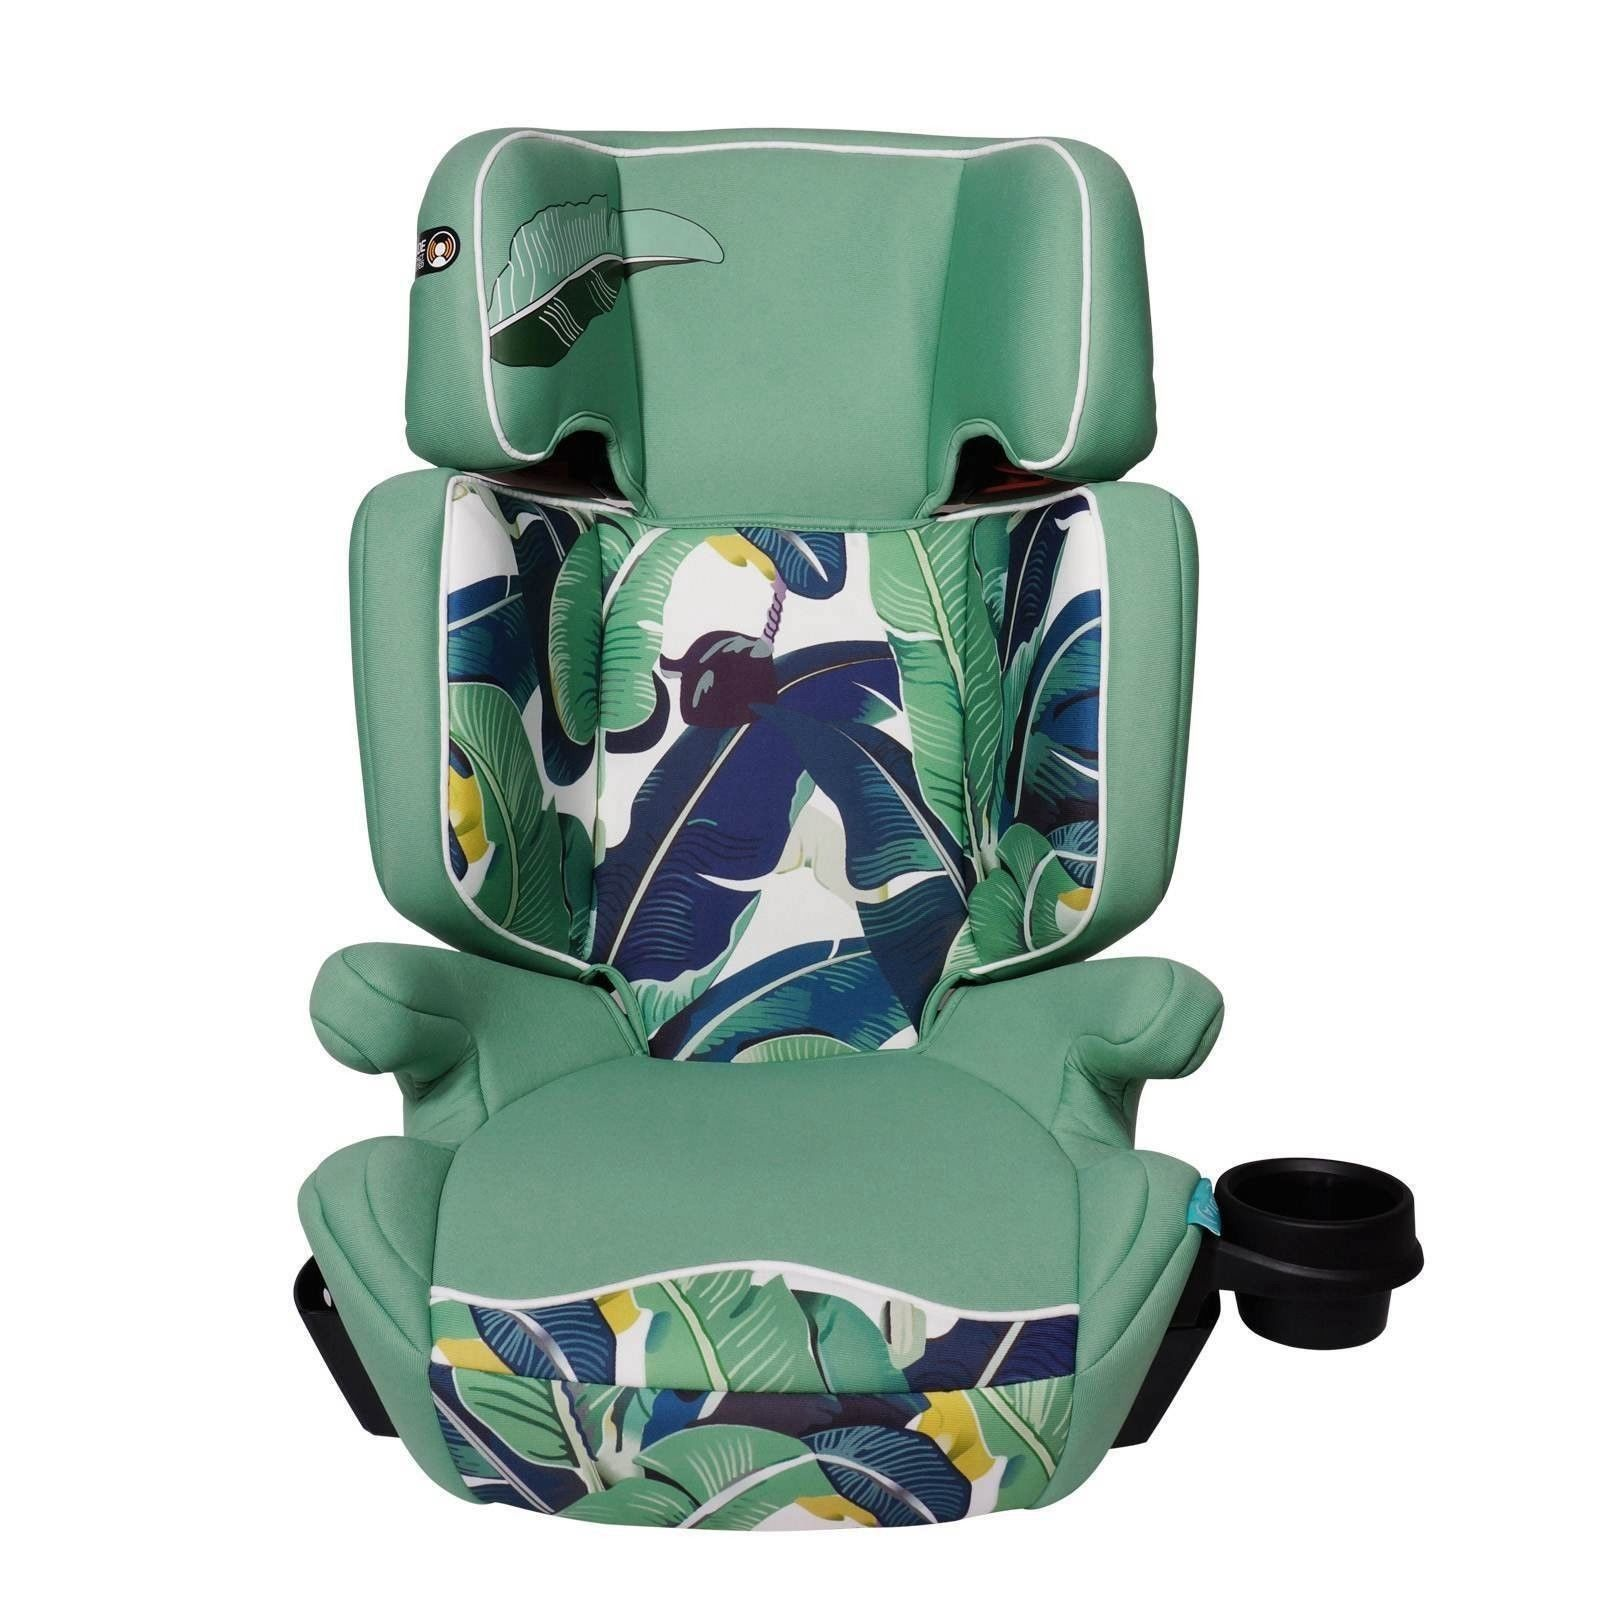 Aidia Explorer 2in1 Safety Booster Car Seat, Green/Blue